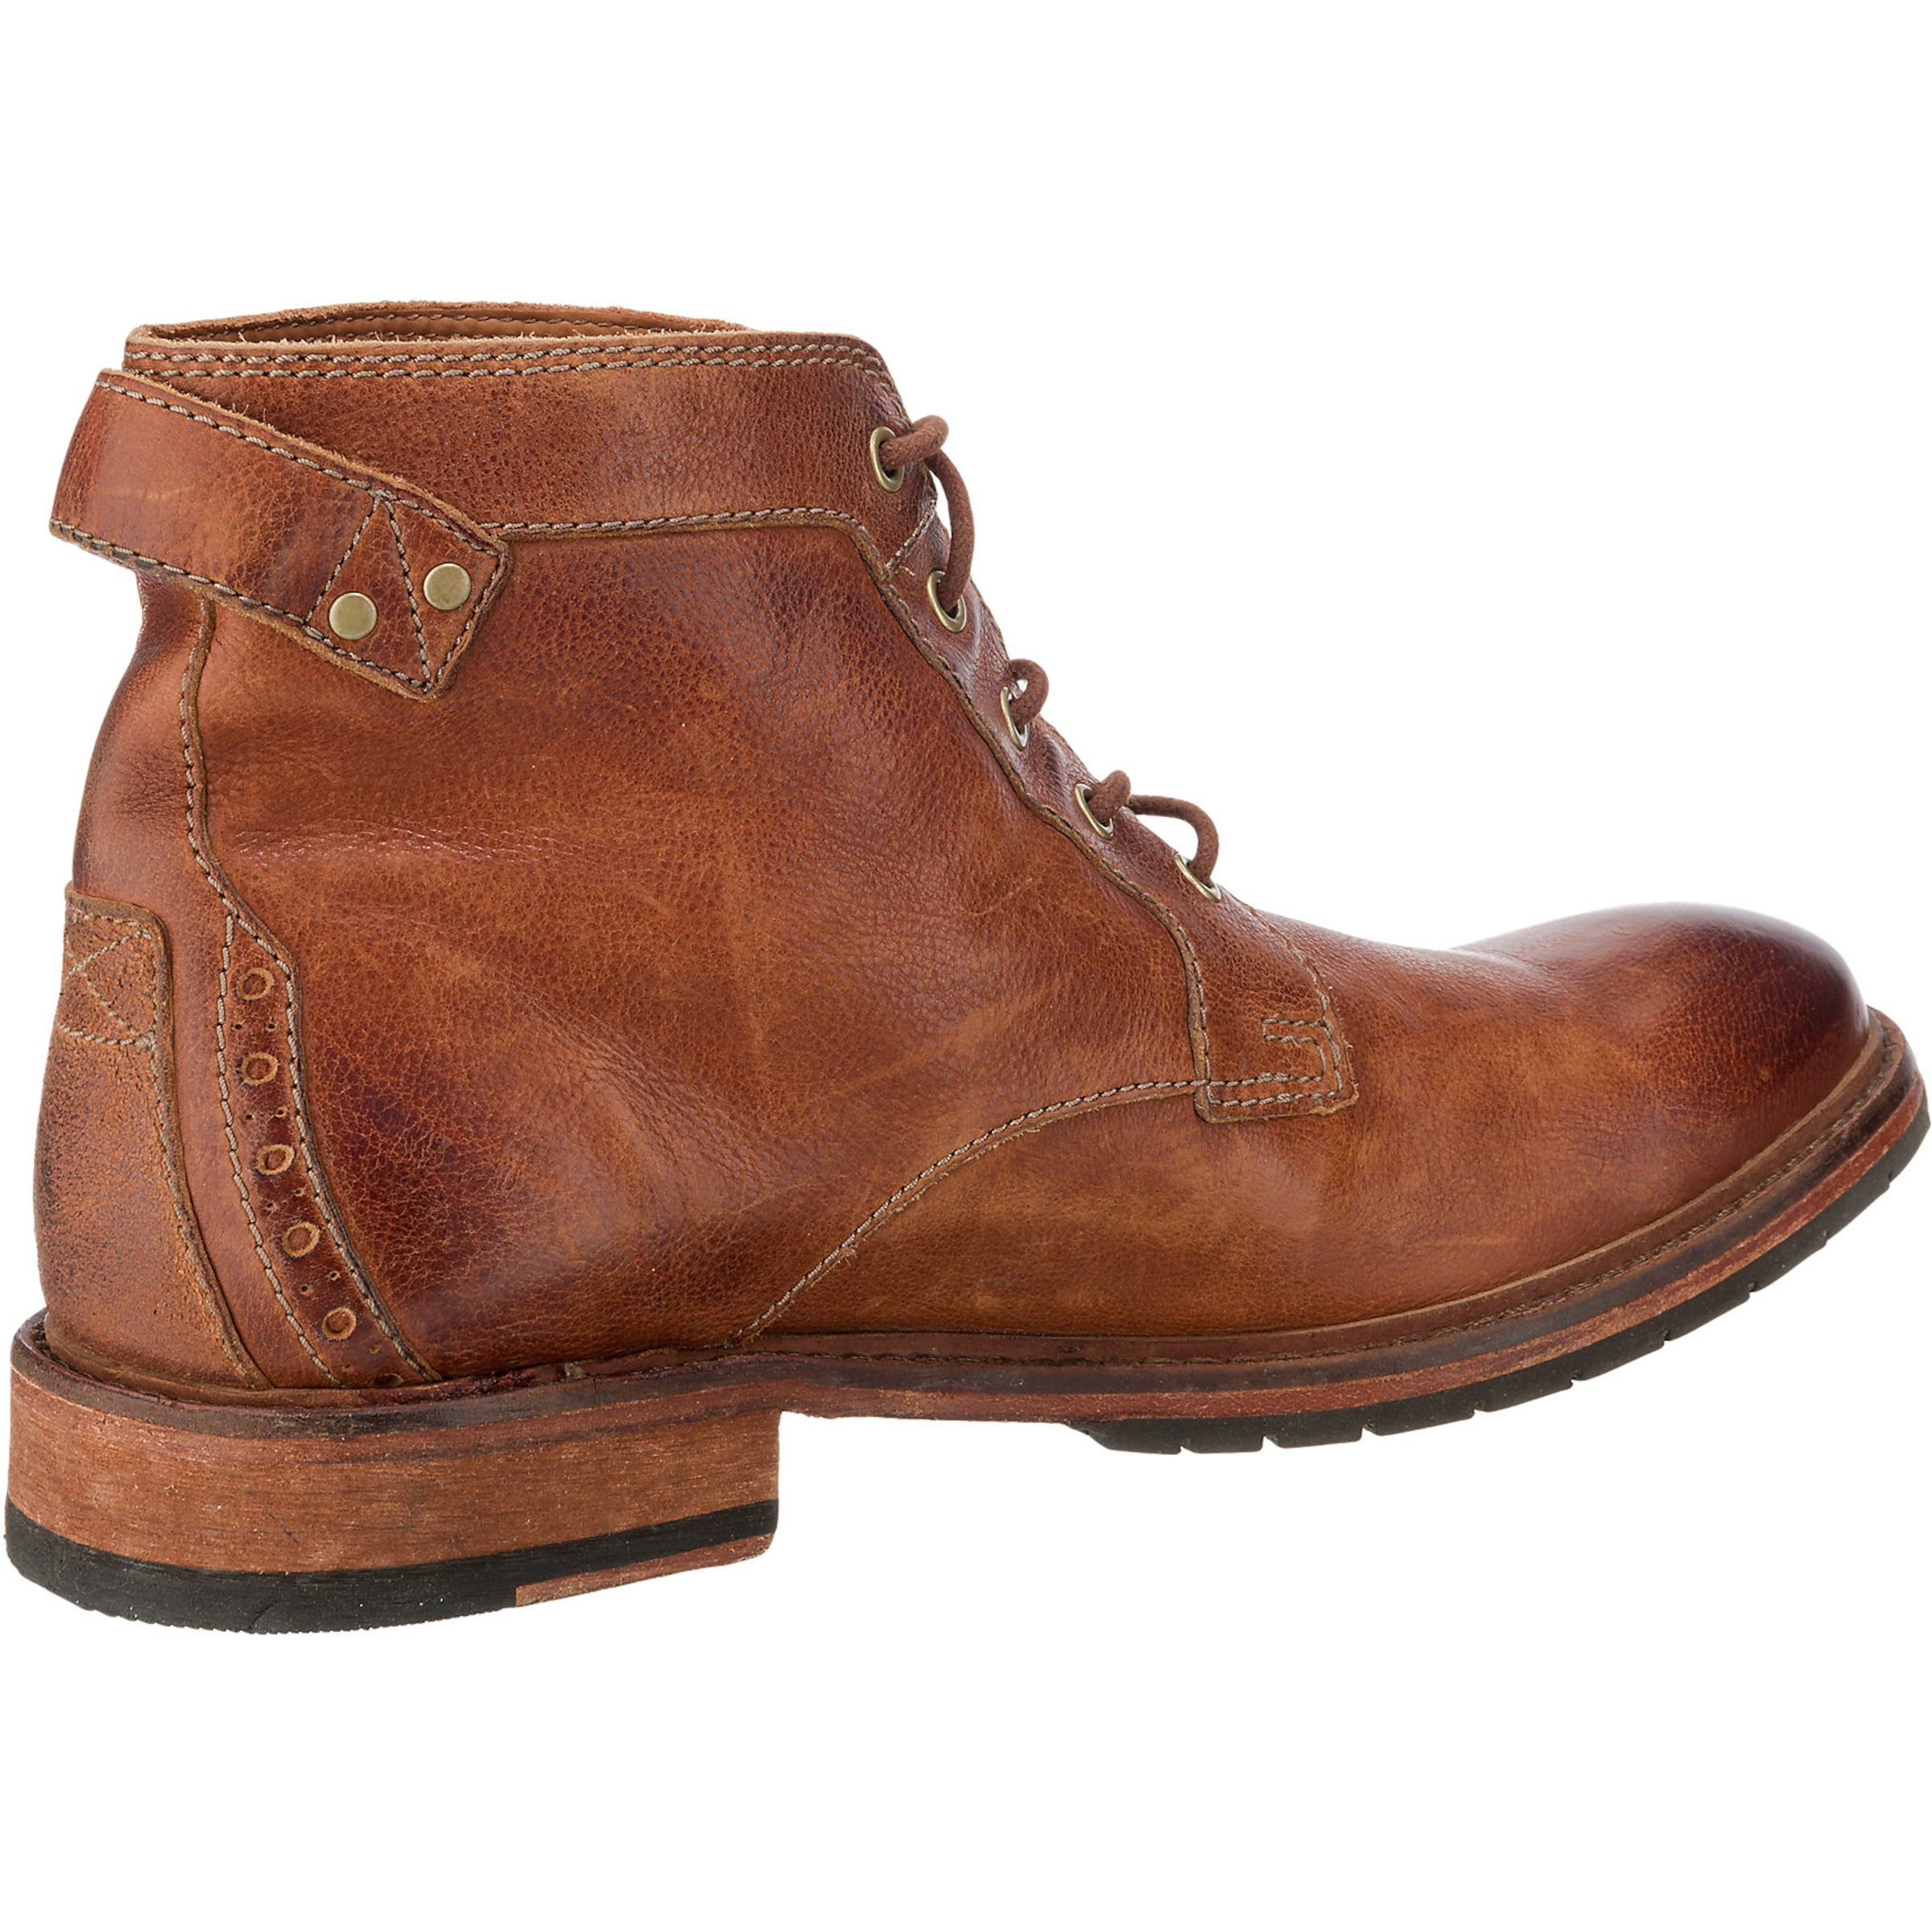 Bruin Clarks Veterboots 'clarkdale In Bud' nmwN08